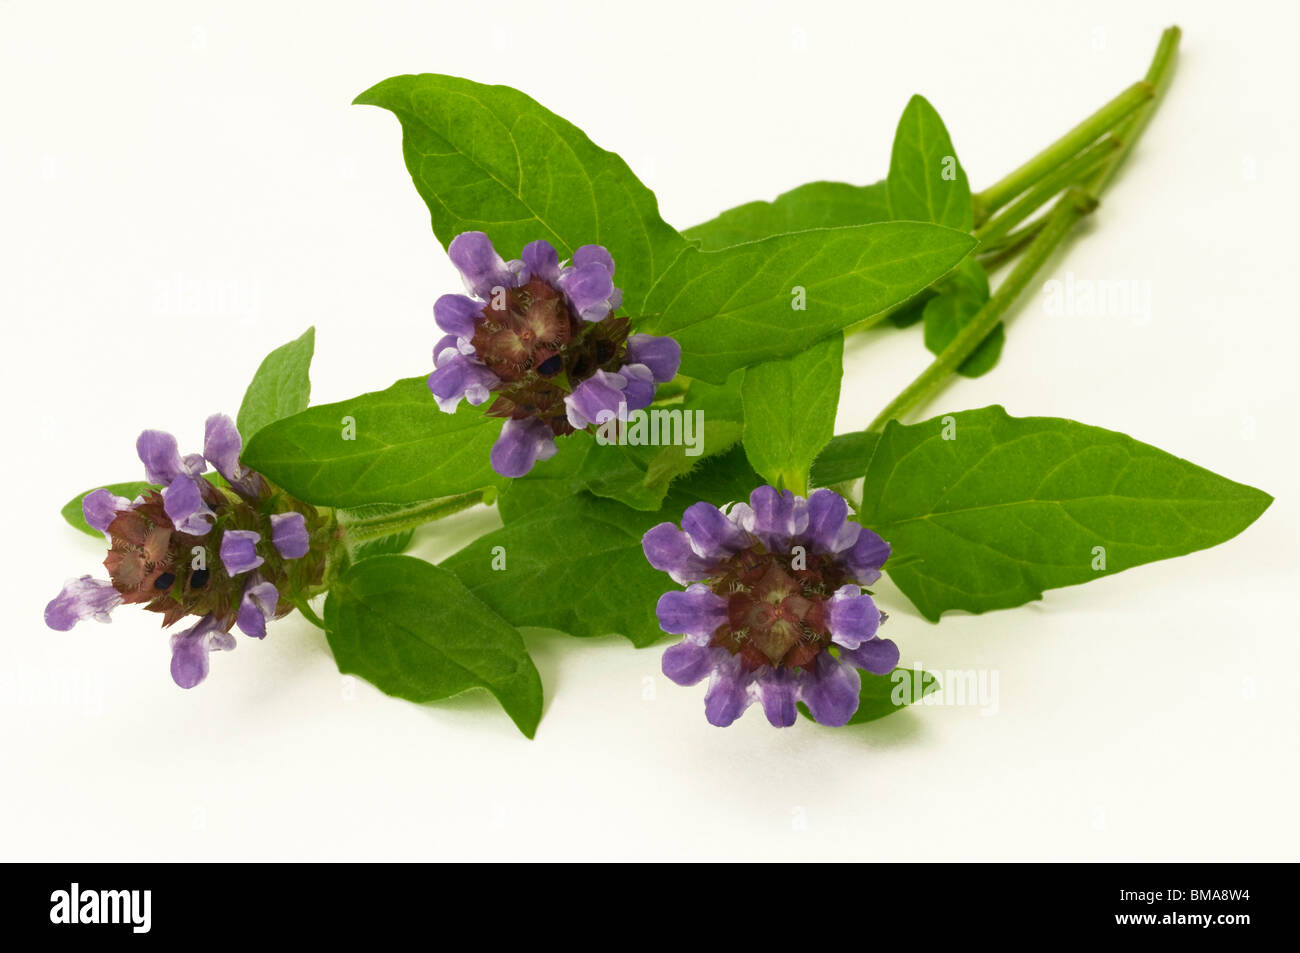 Common Selfheal (Prunella vulgaris), flowering stalks, studio picture. Stock Photo